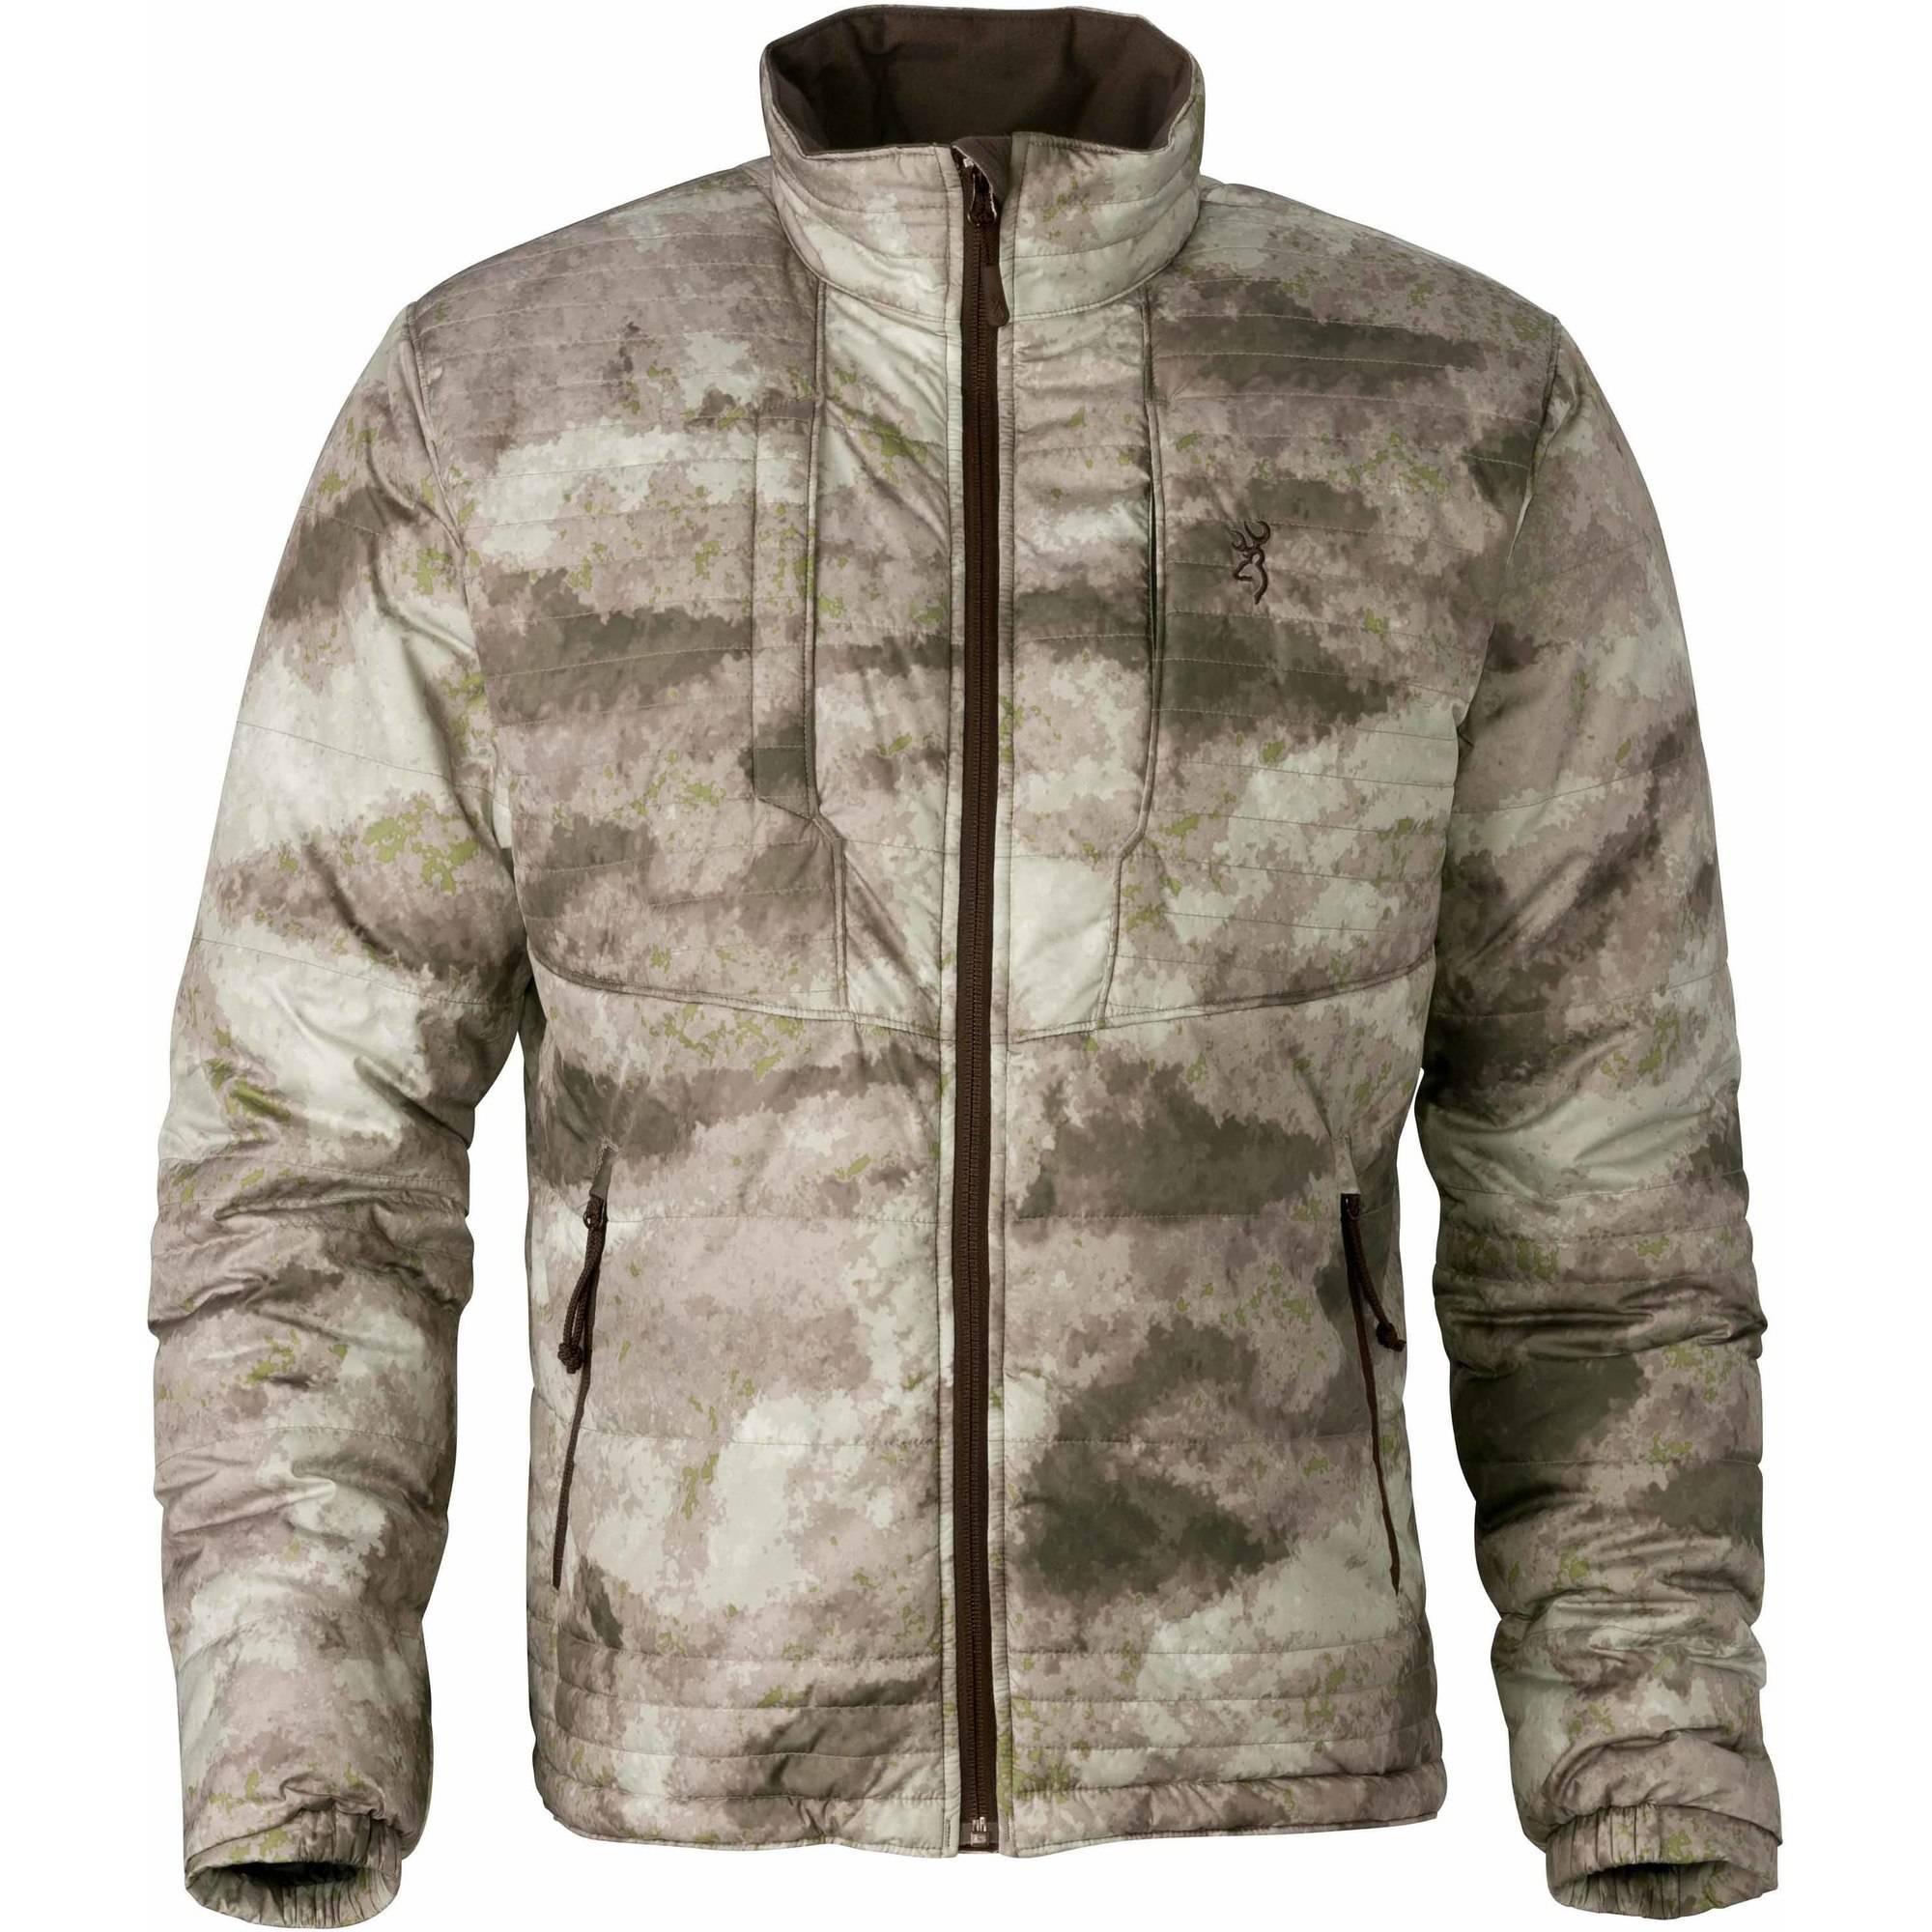 Hell's Canyon Speed Shrike Jacket by Browning